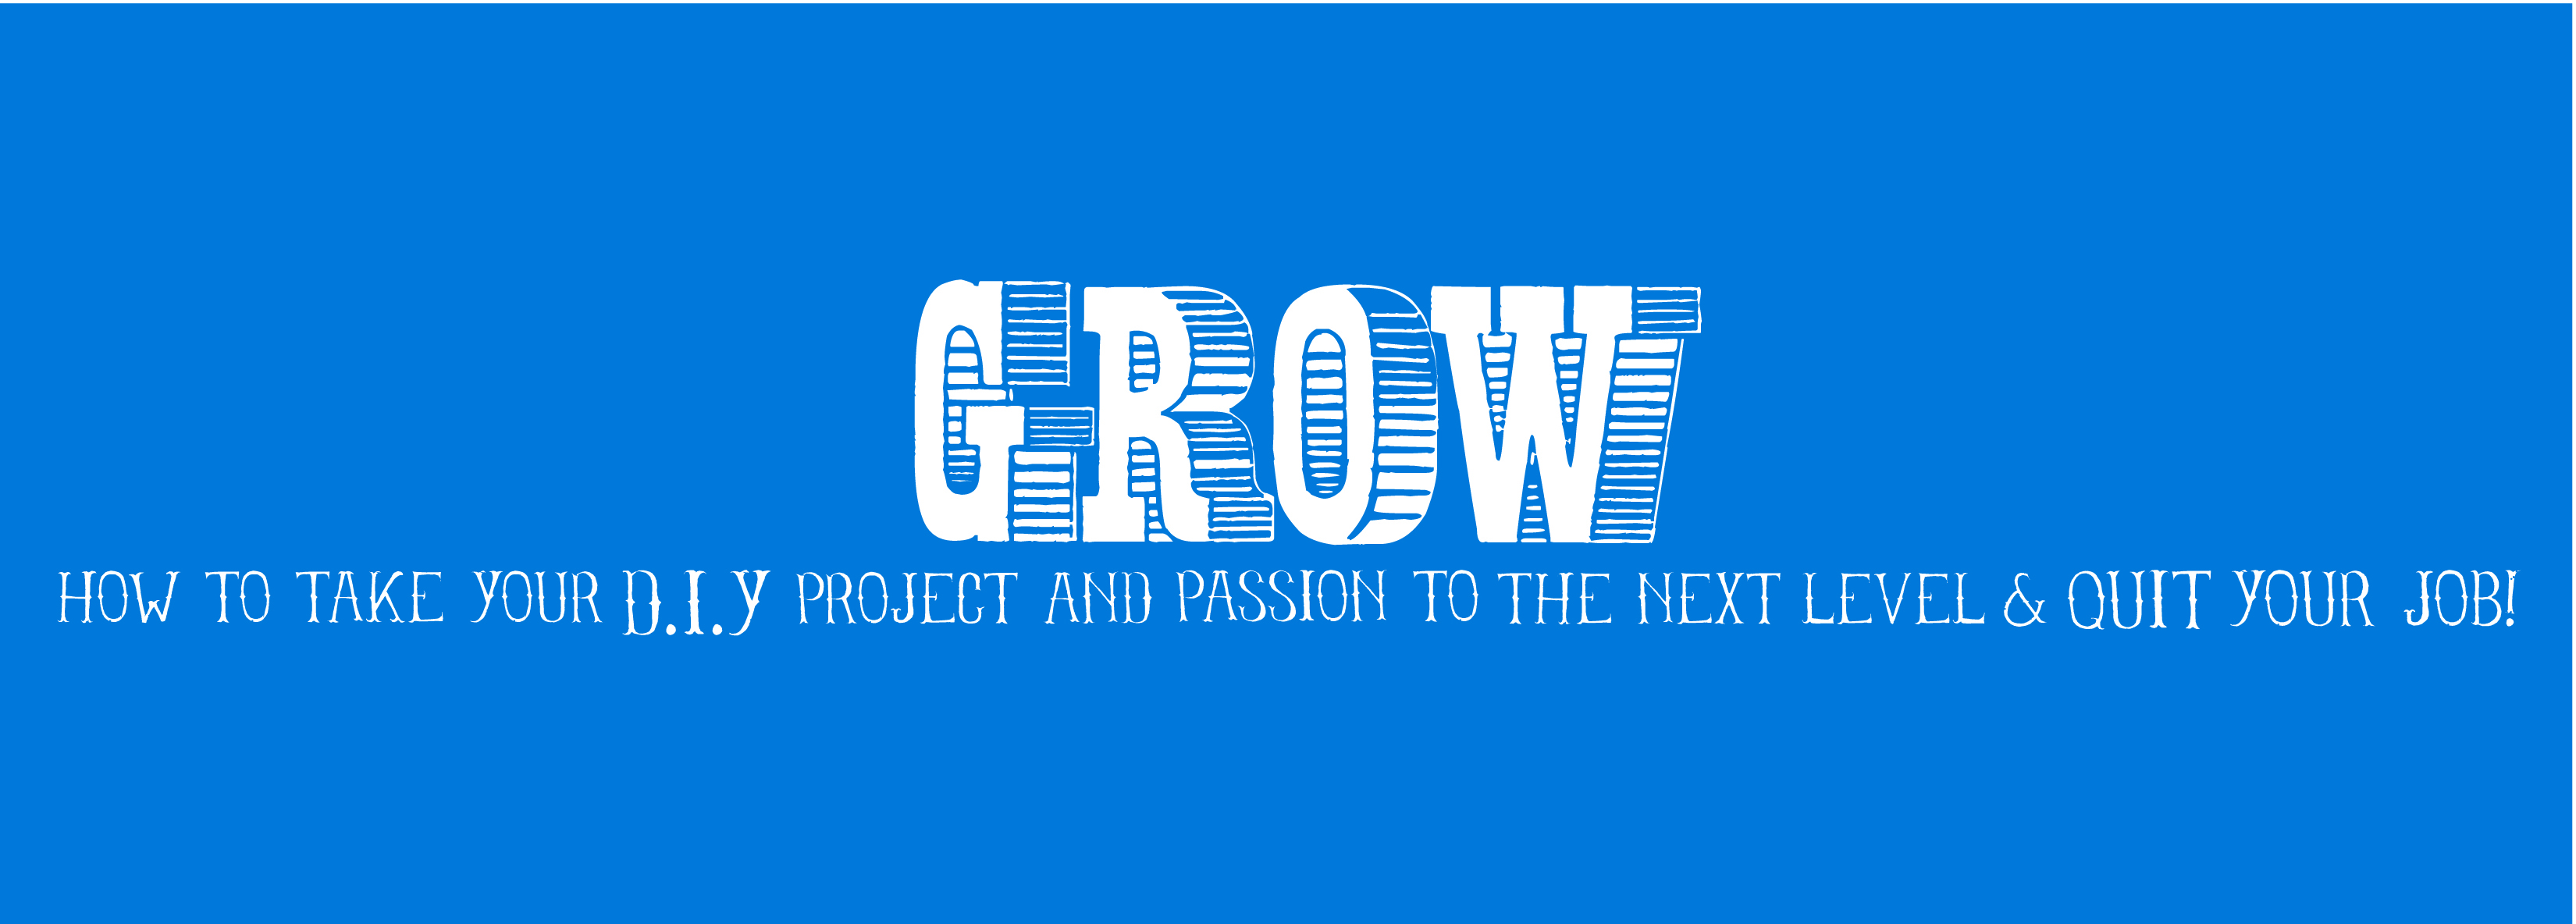 Tumblrstaticgrowheaderg grow how to take your do it yourself project and passion to the next level and quit your job is a practical field guide for creative people with great solutioingenieria Images